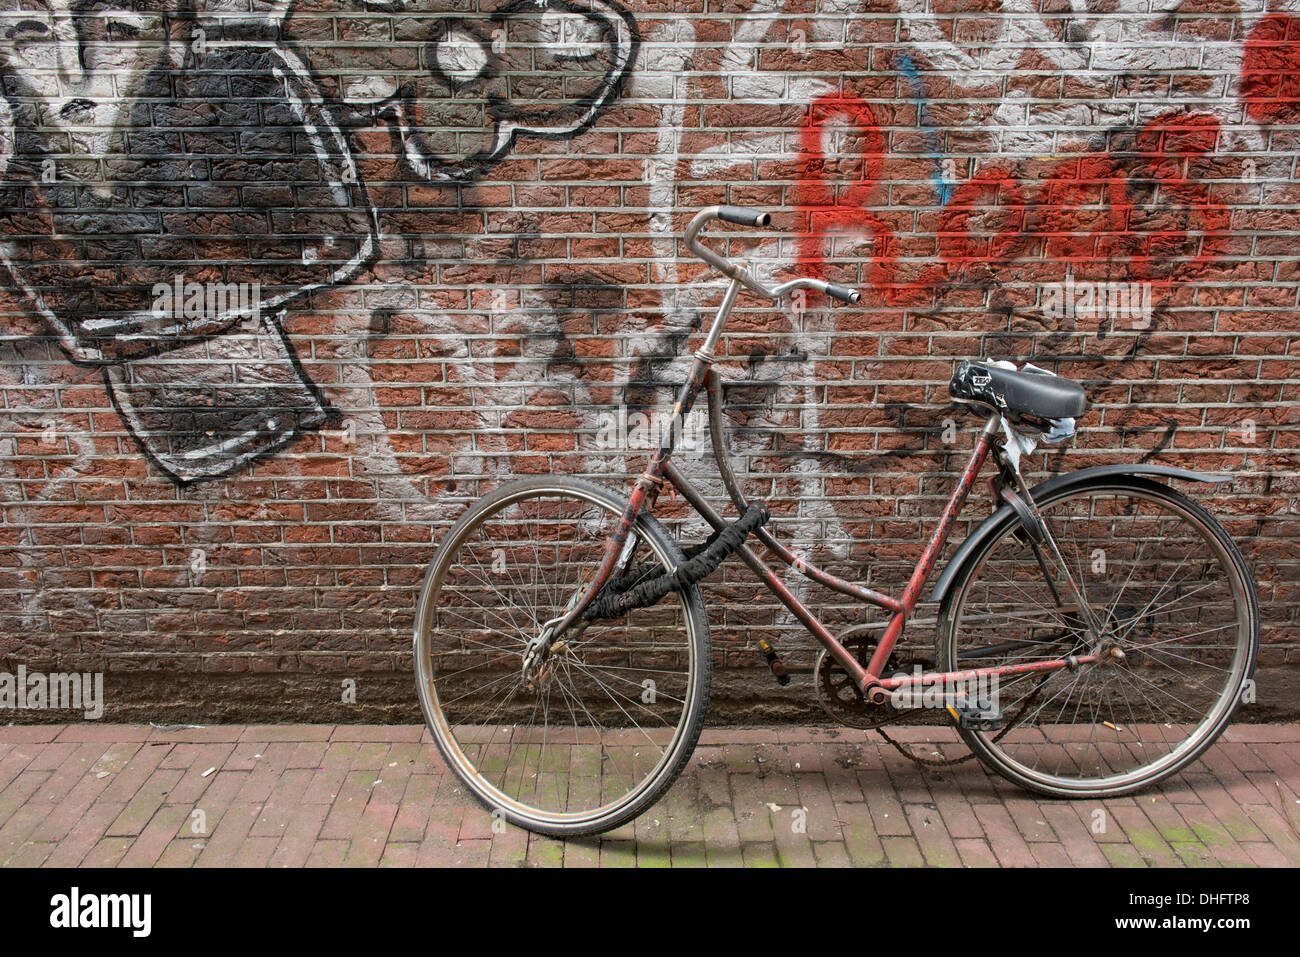 An old bike leant against a graffiti'd wall in the centre of Amsterdam, The Netherlands. - Stock Image